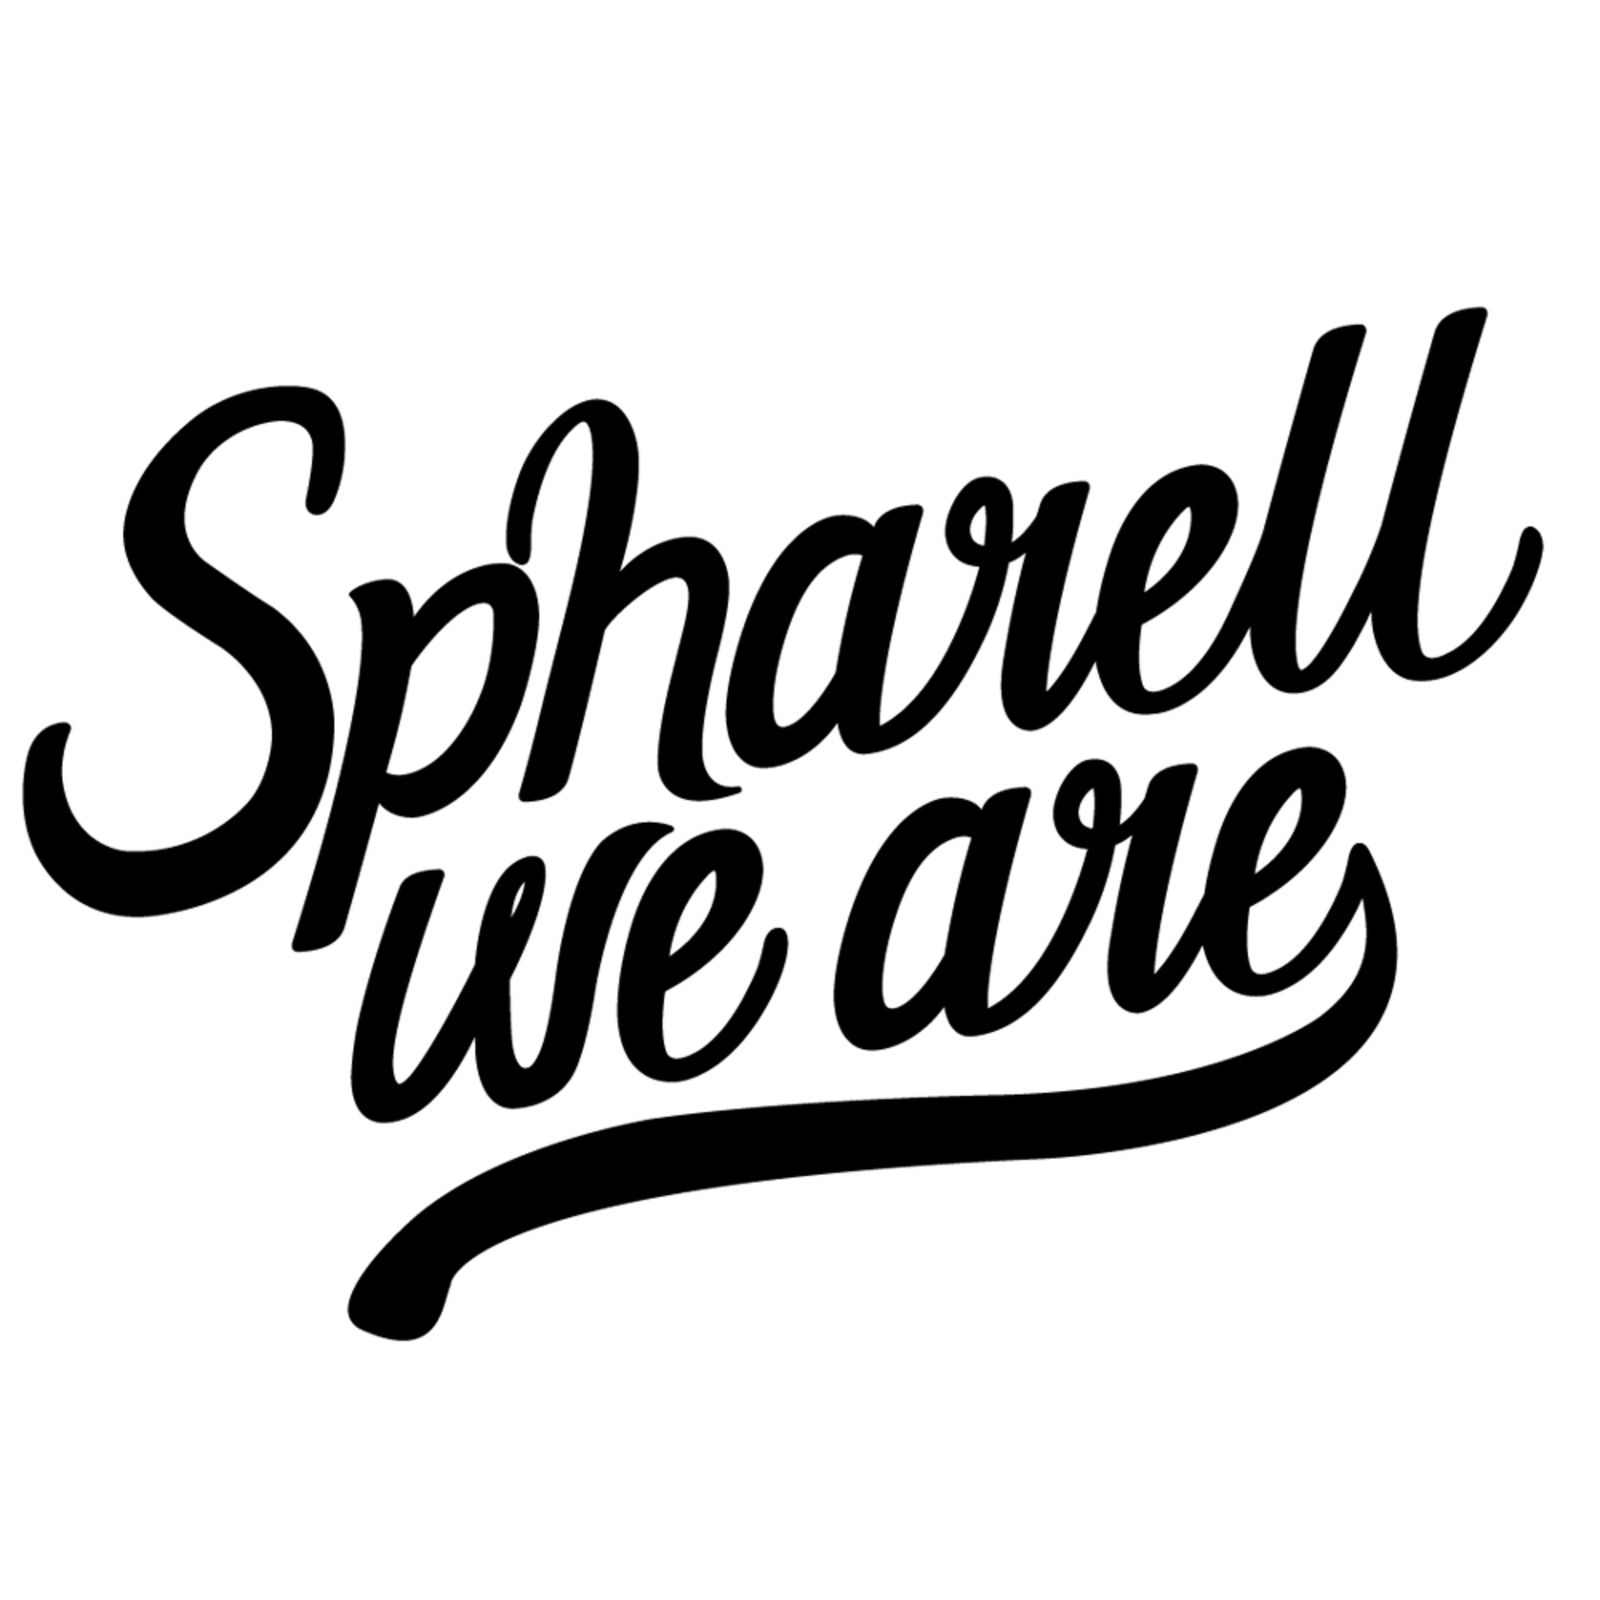 Spharell, We Are